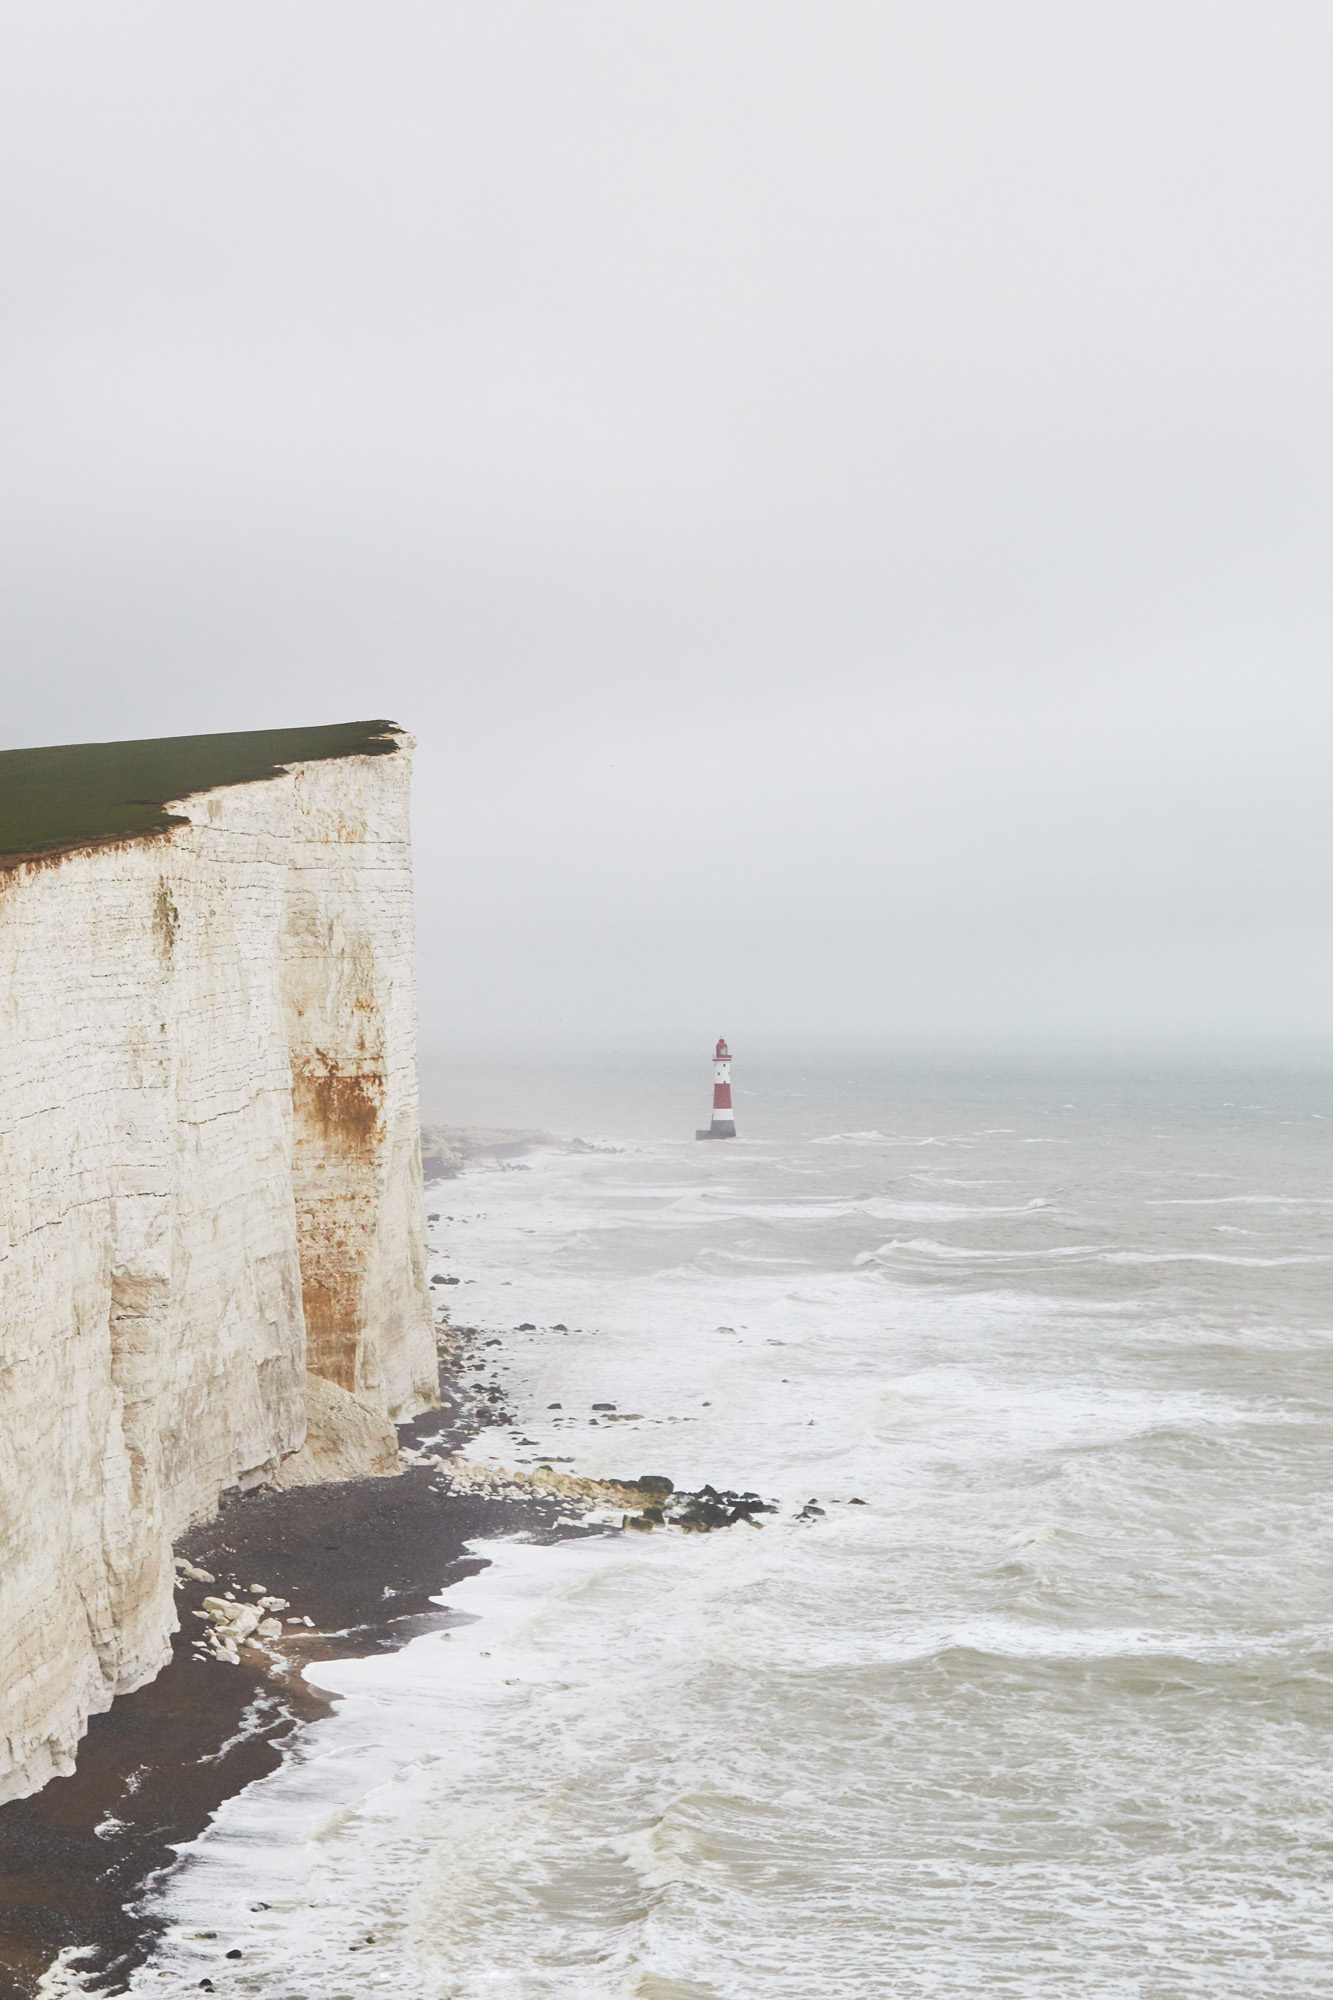 1. Beachy Head by Rich Stapleton